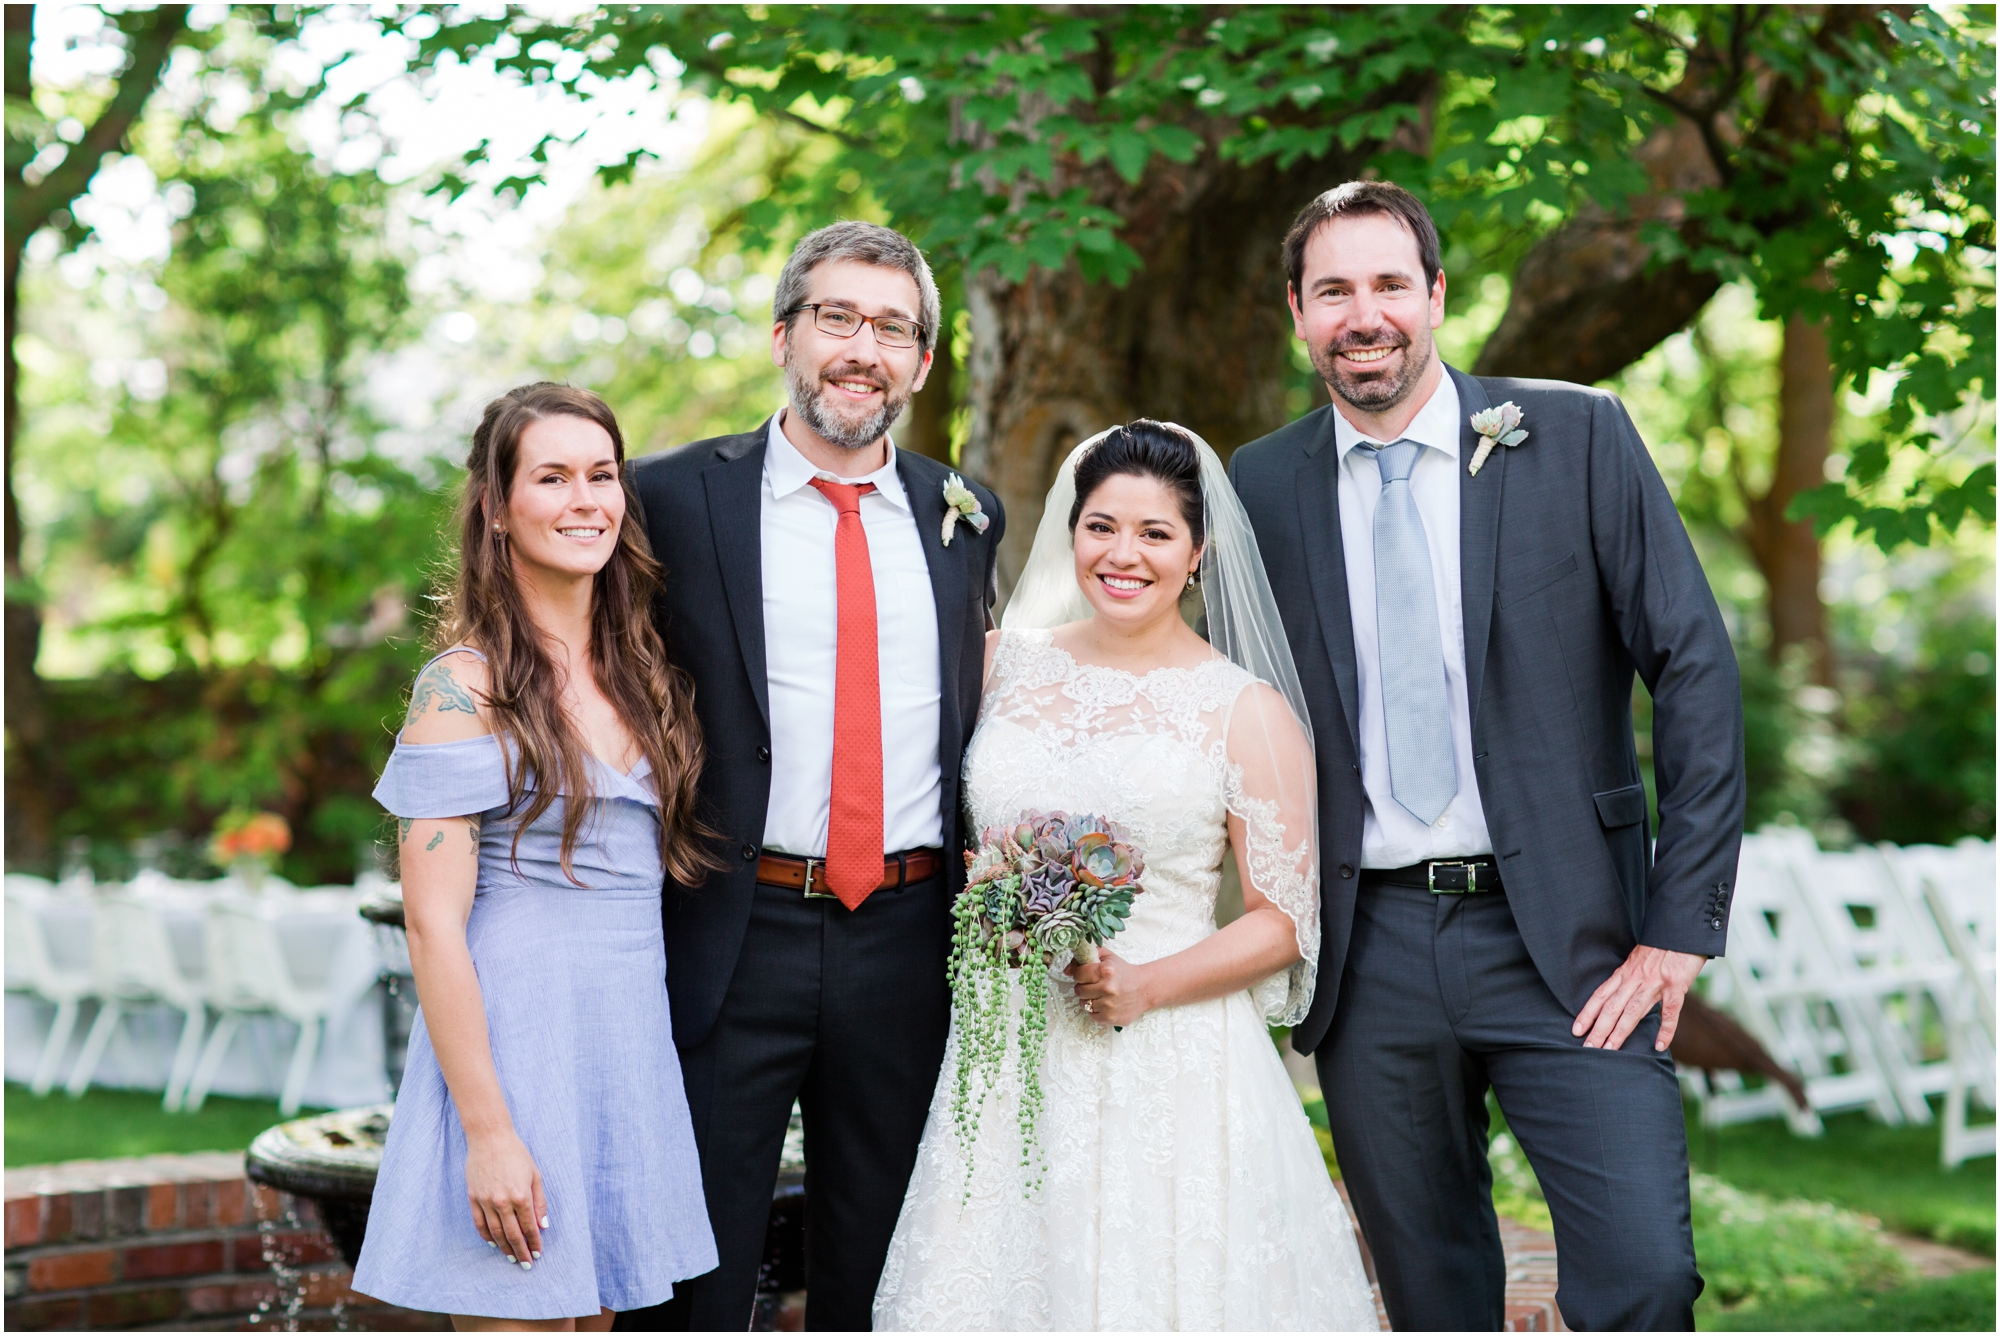 Garden wedding in Ellensburg, WA. Photos by Briana Calderon Photography based in the greater Seattle-Tacoma Area._1324.jpg